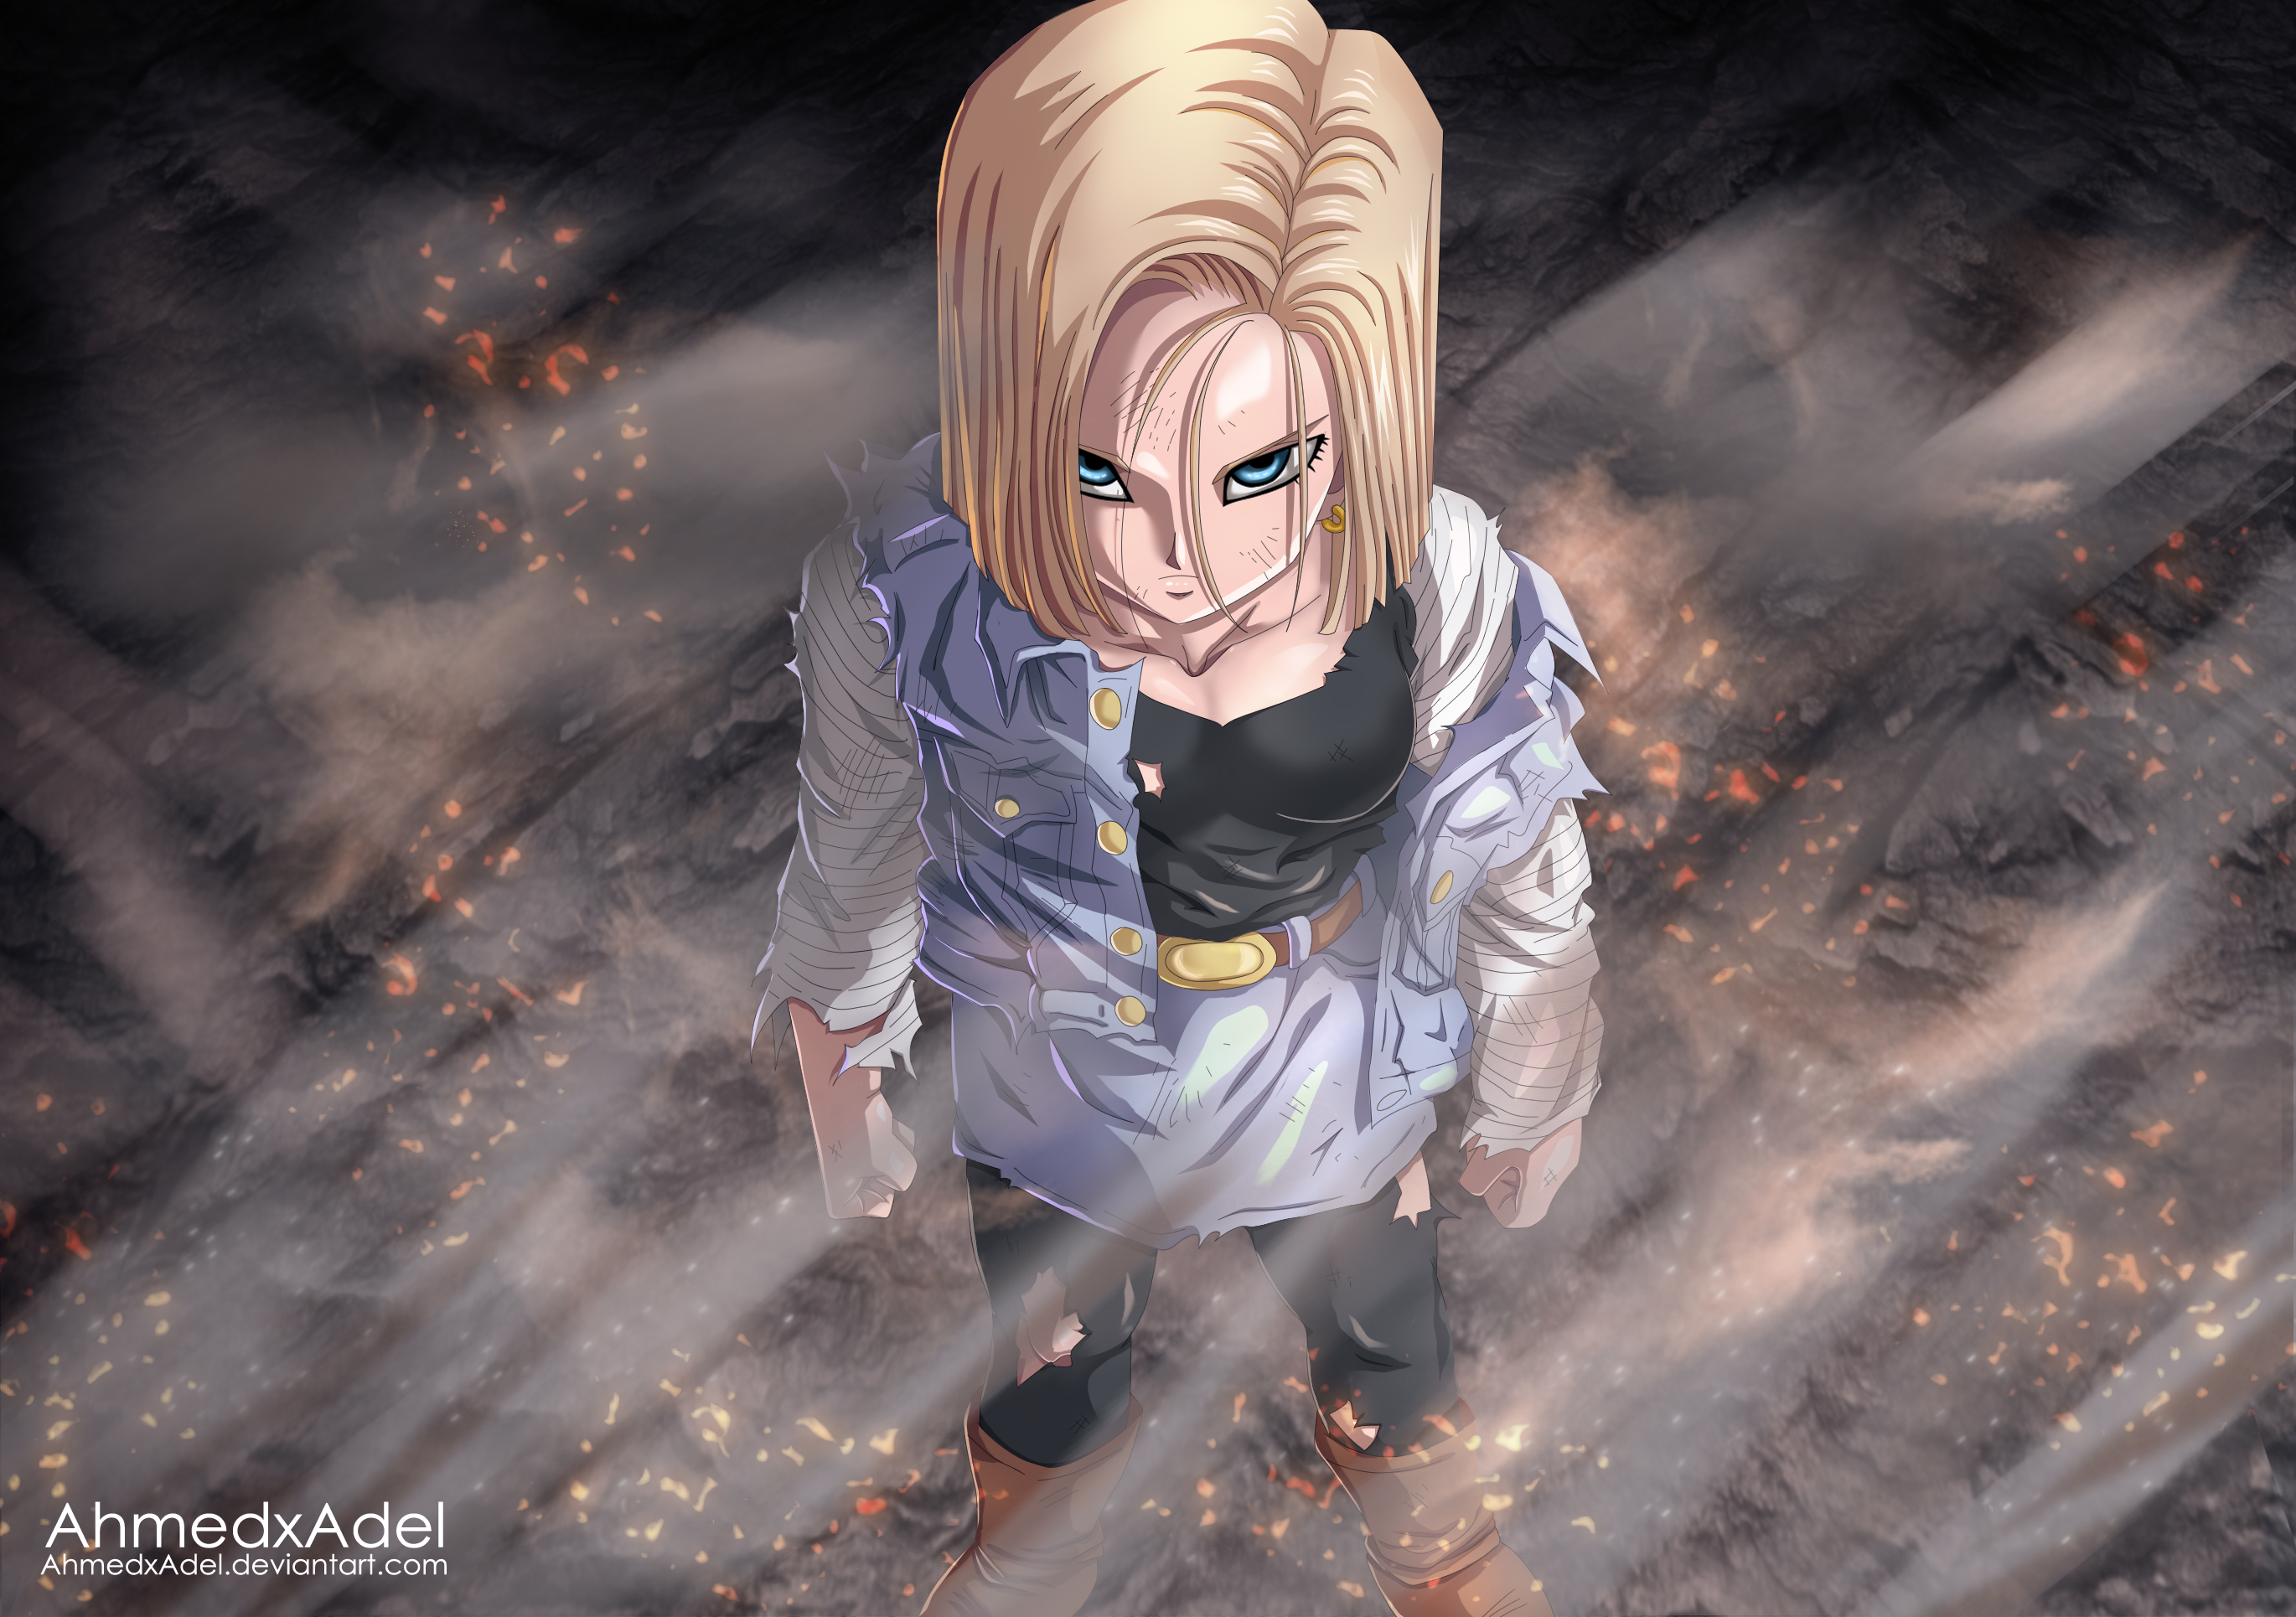 Android 18 hd wallpaper background image 2740x1930 - Free dragonfly wallpaper for android ...